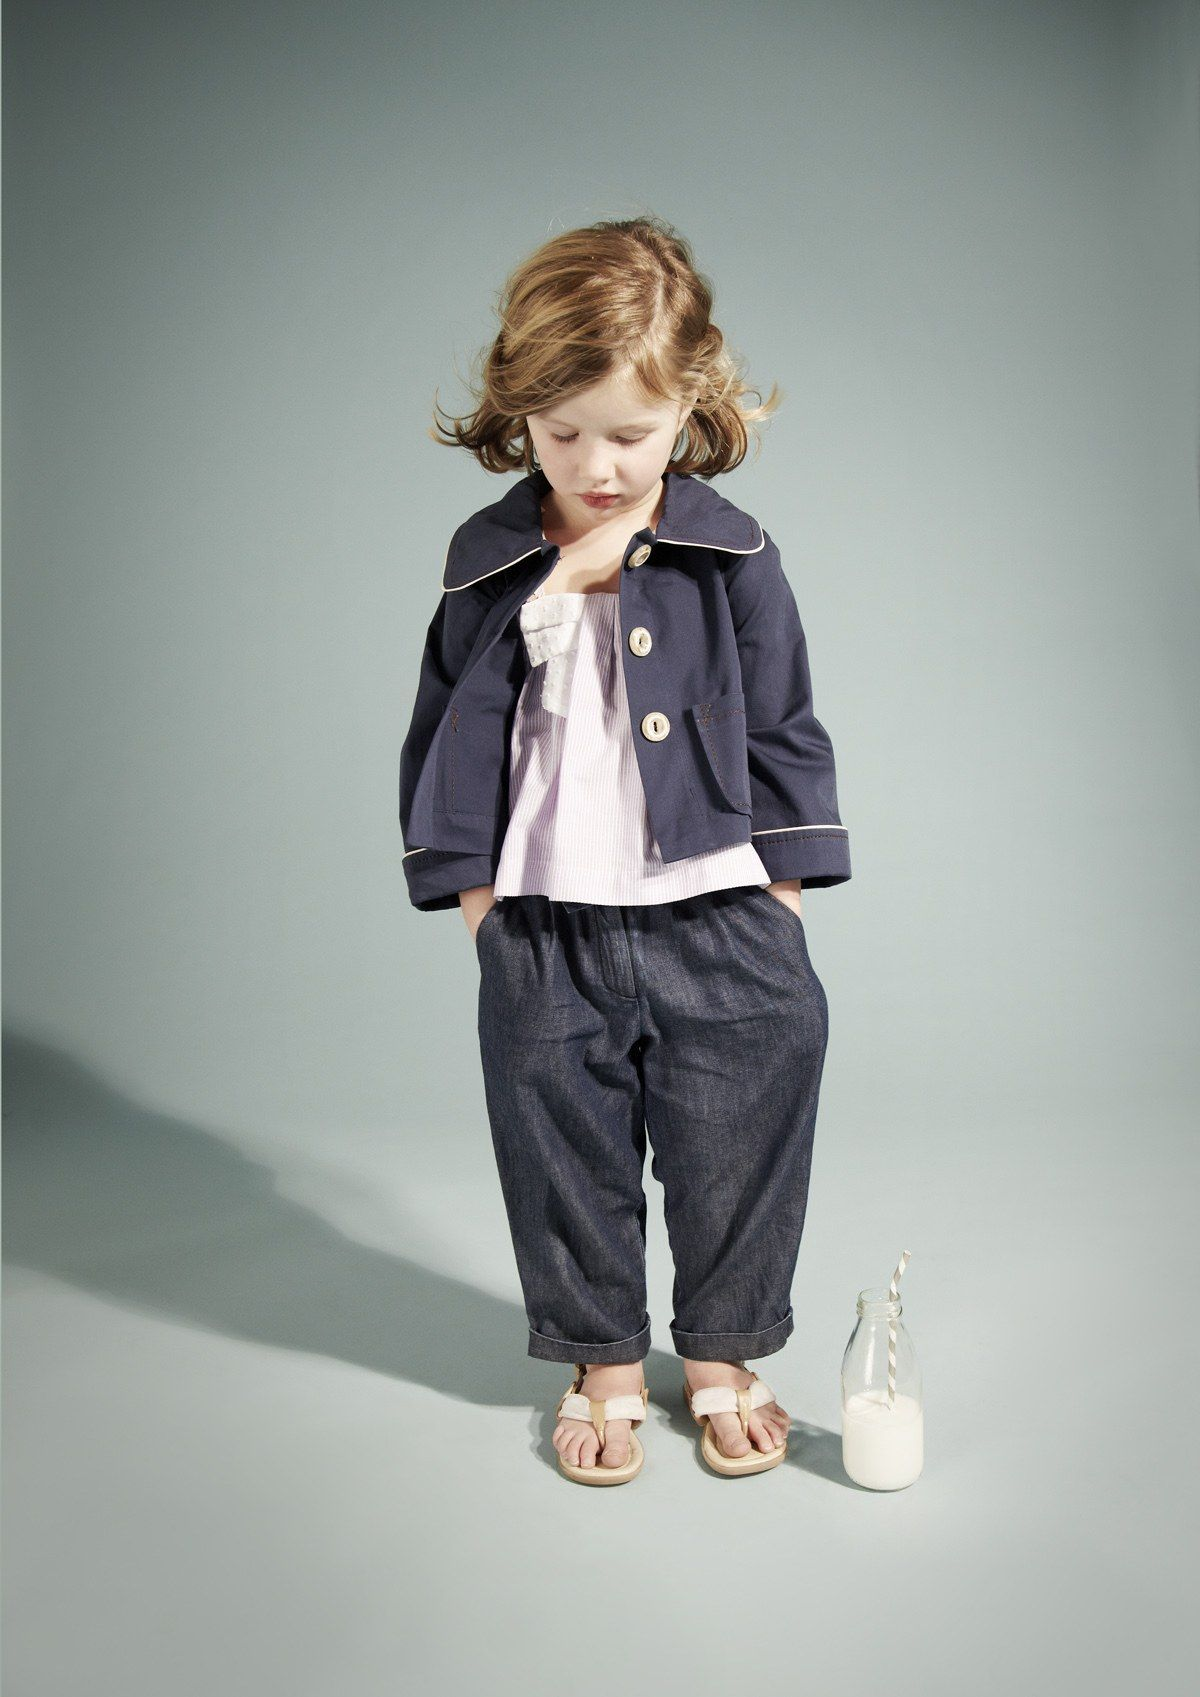 Hucklebones Summer 2012 Toddler Tomboy Style For The Chic British Kids Fashion Label Via